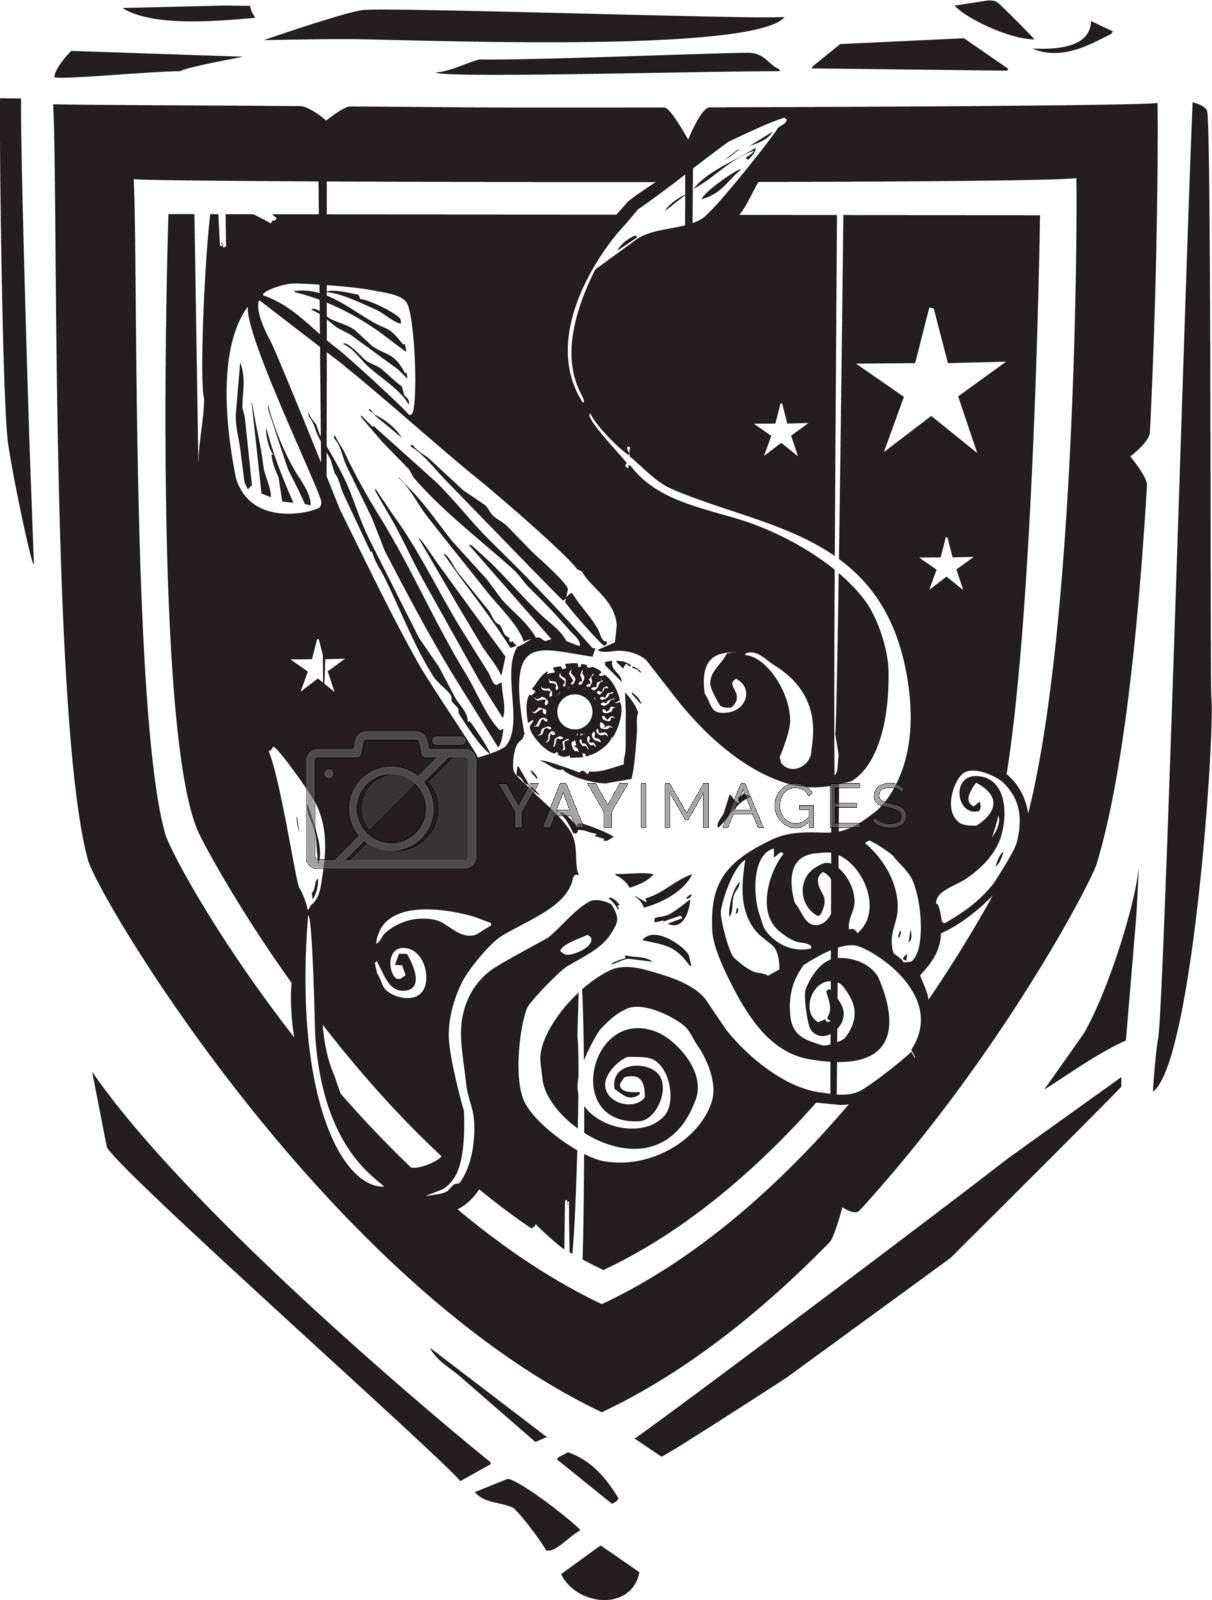 Woodcut style Heraldic Shield with a Squid or kraken